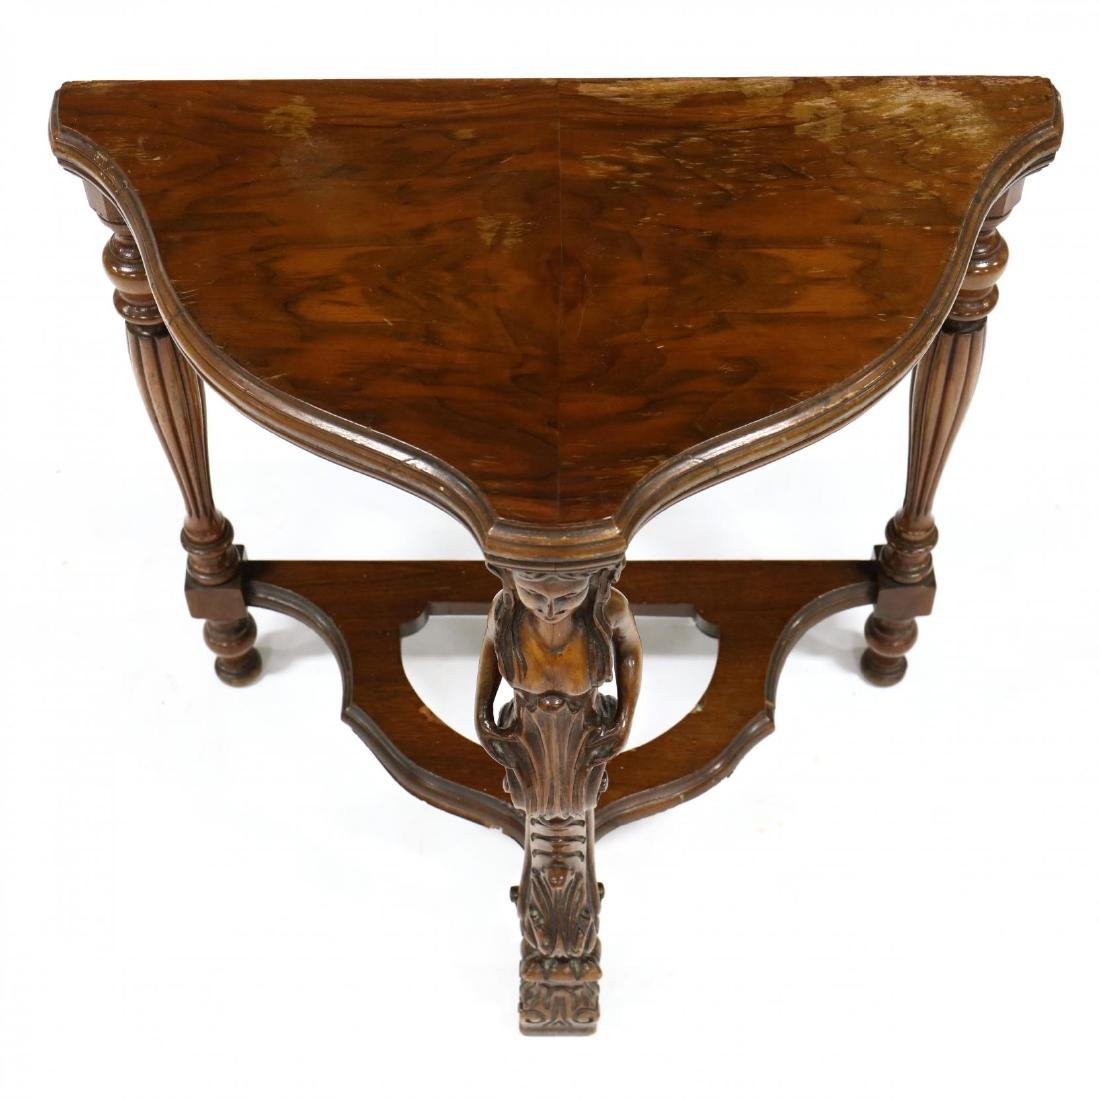 Continental Carved Walnut Low Demilune Table - 2